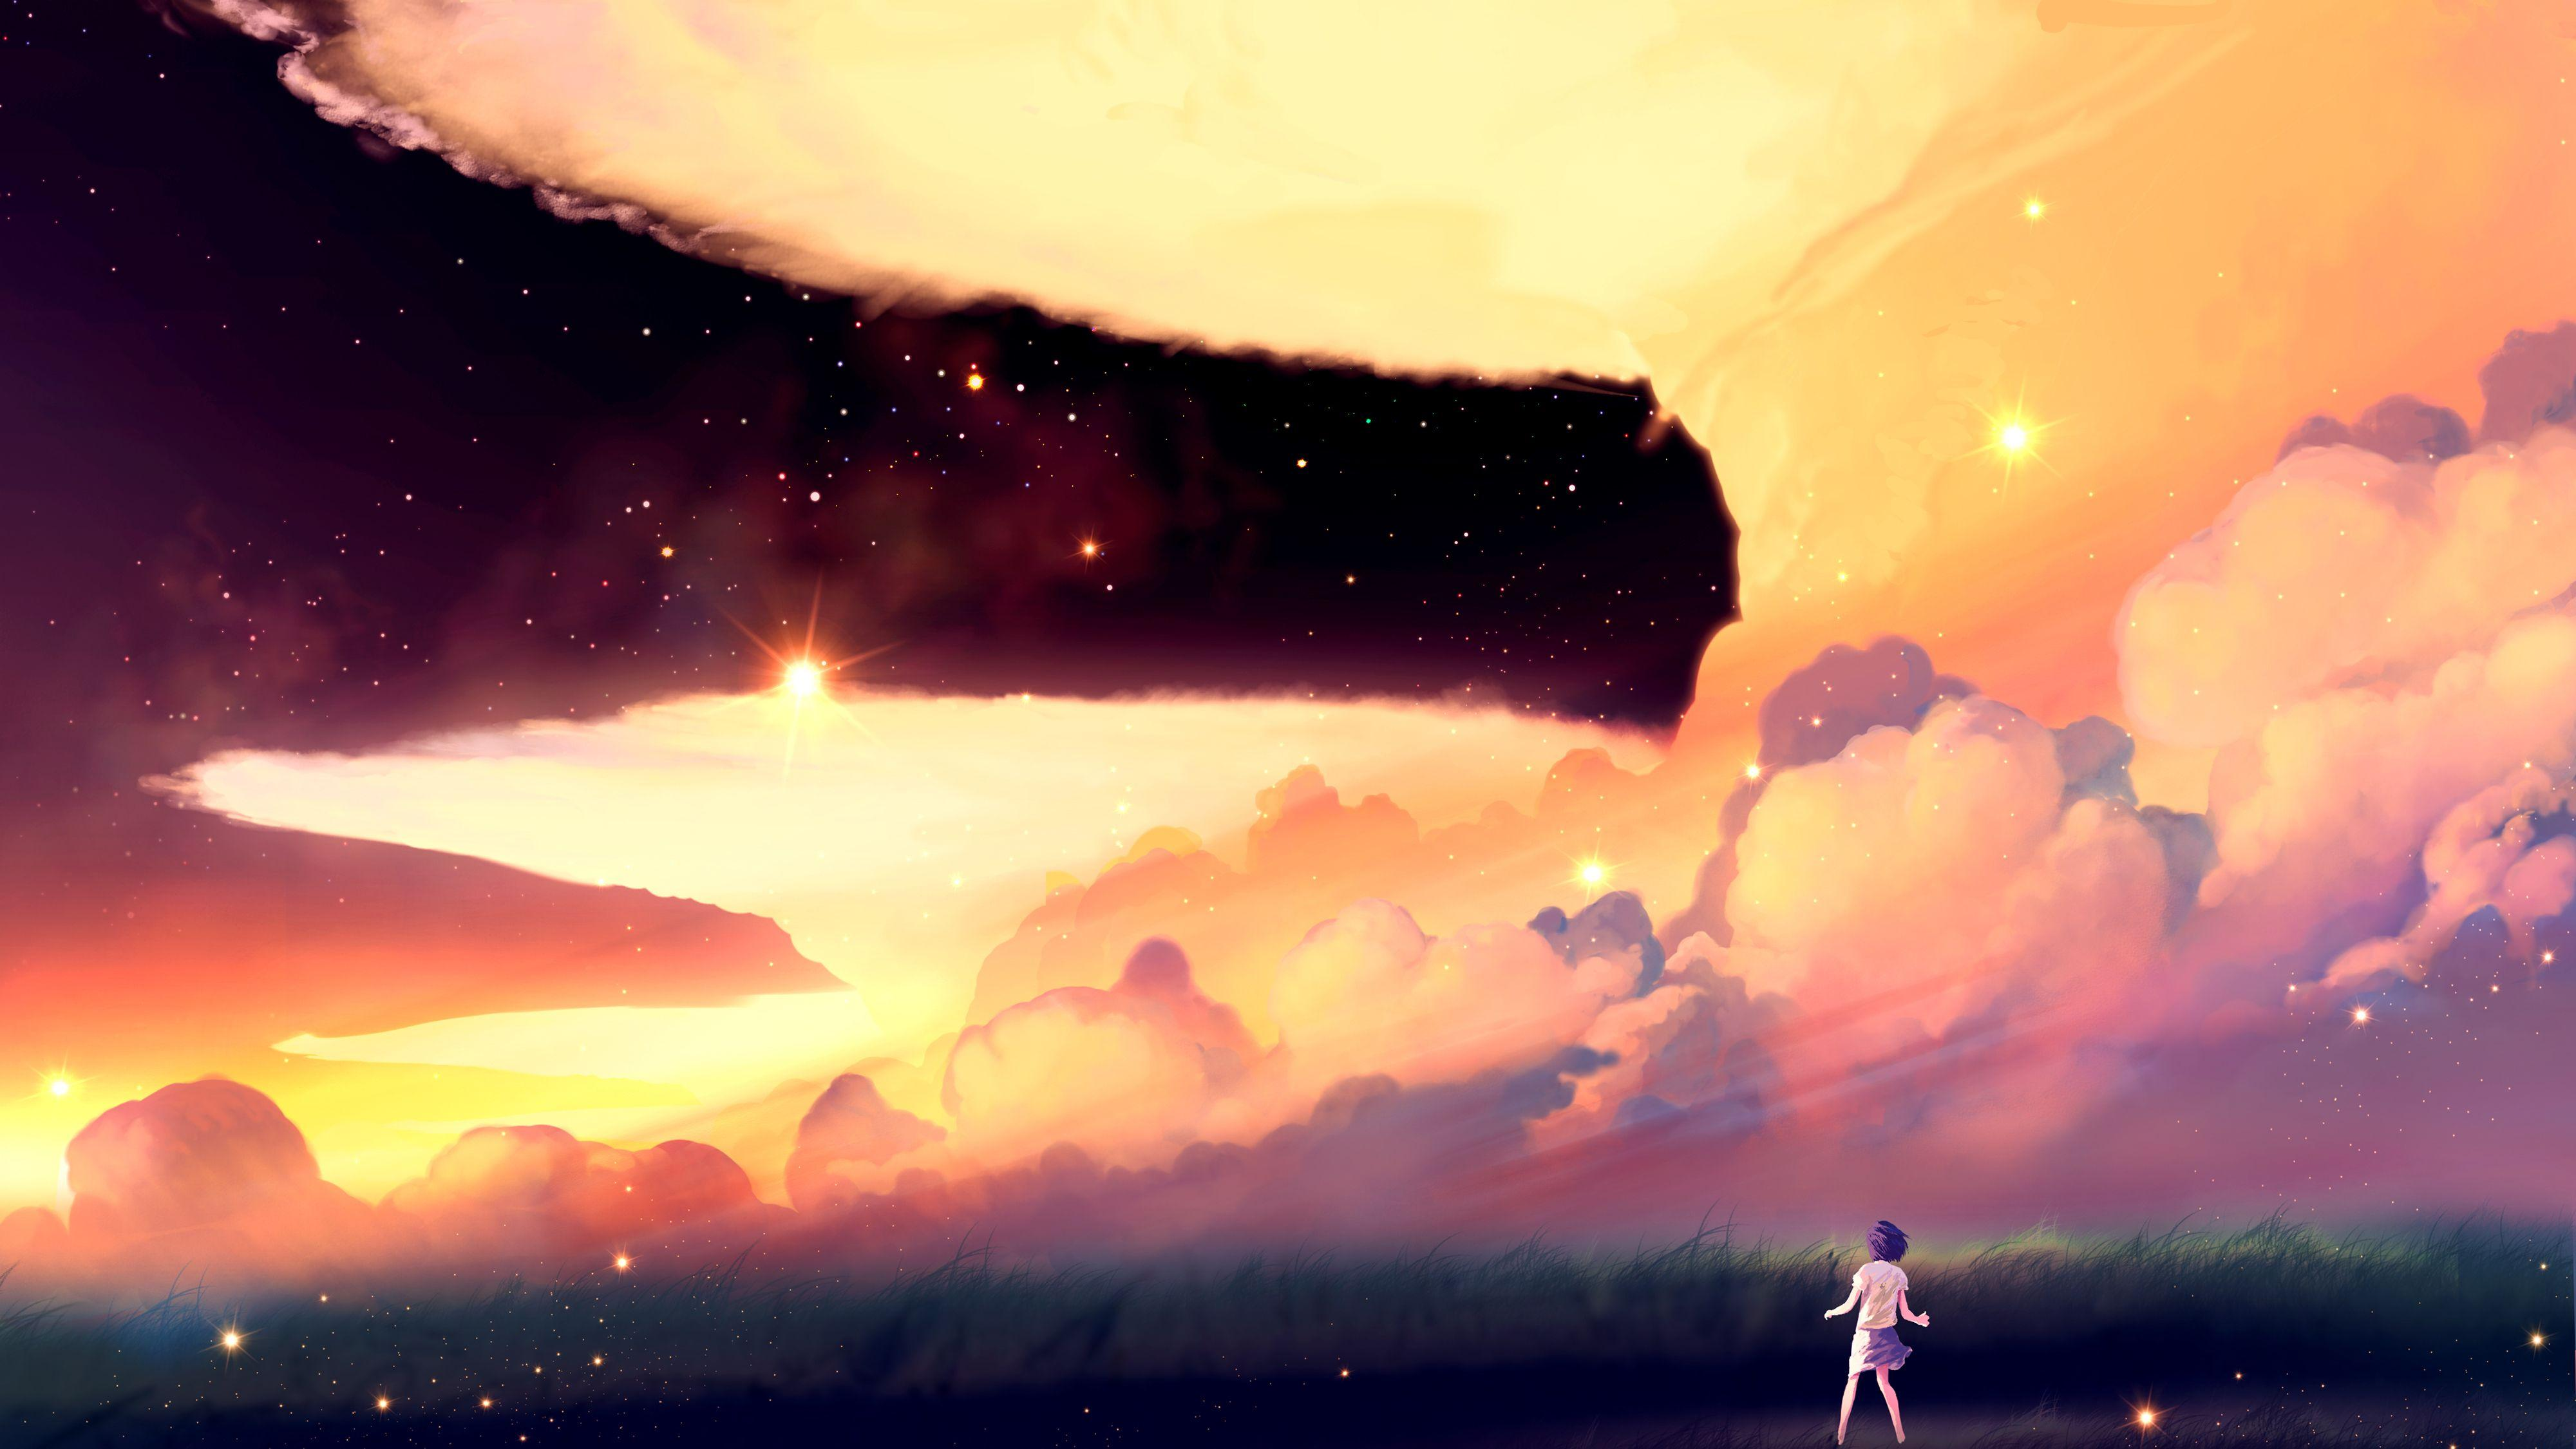 Chill Anime Pc Wallpapers Wallpaper Cave